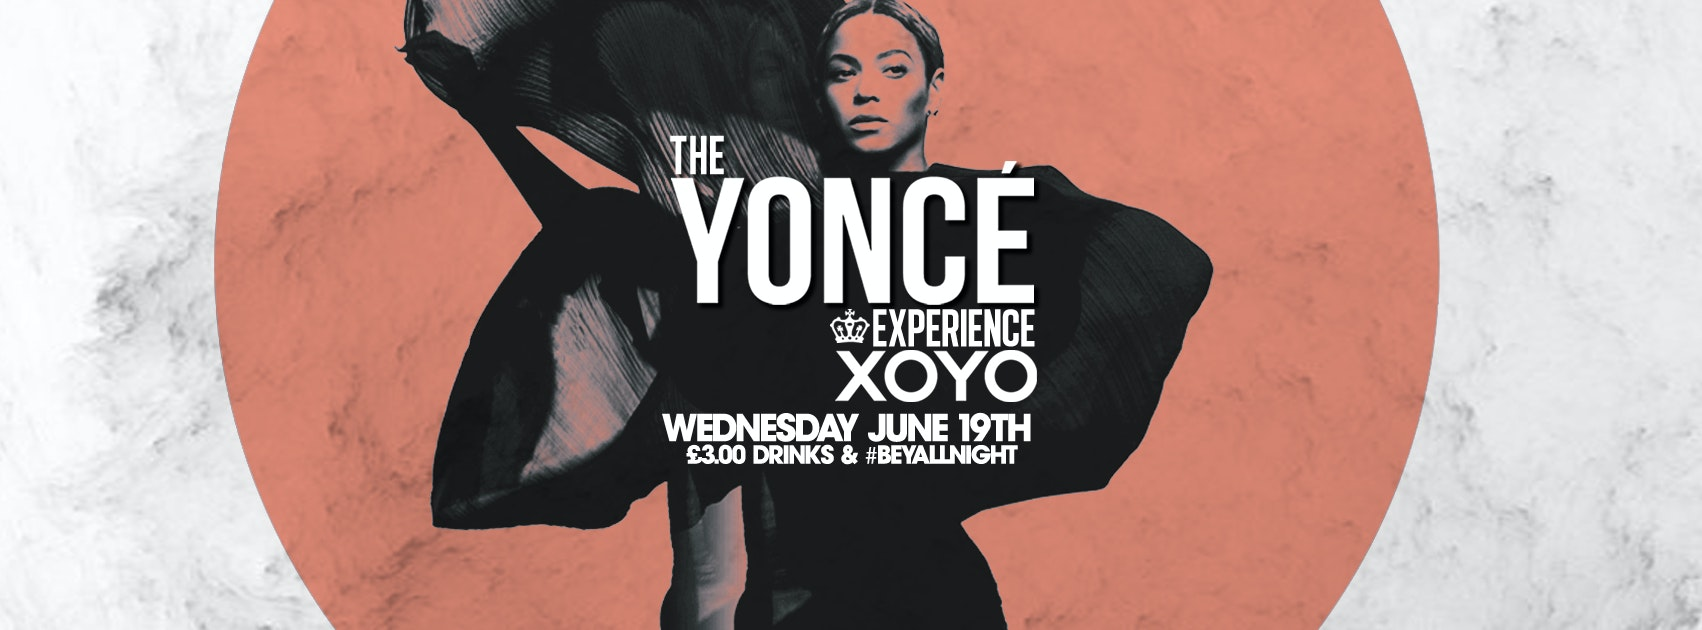 The Yoncé Experience – June 19th | XOYO LONDON